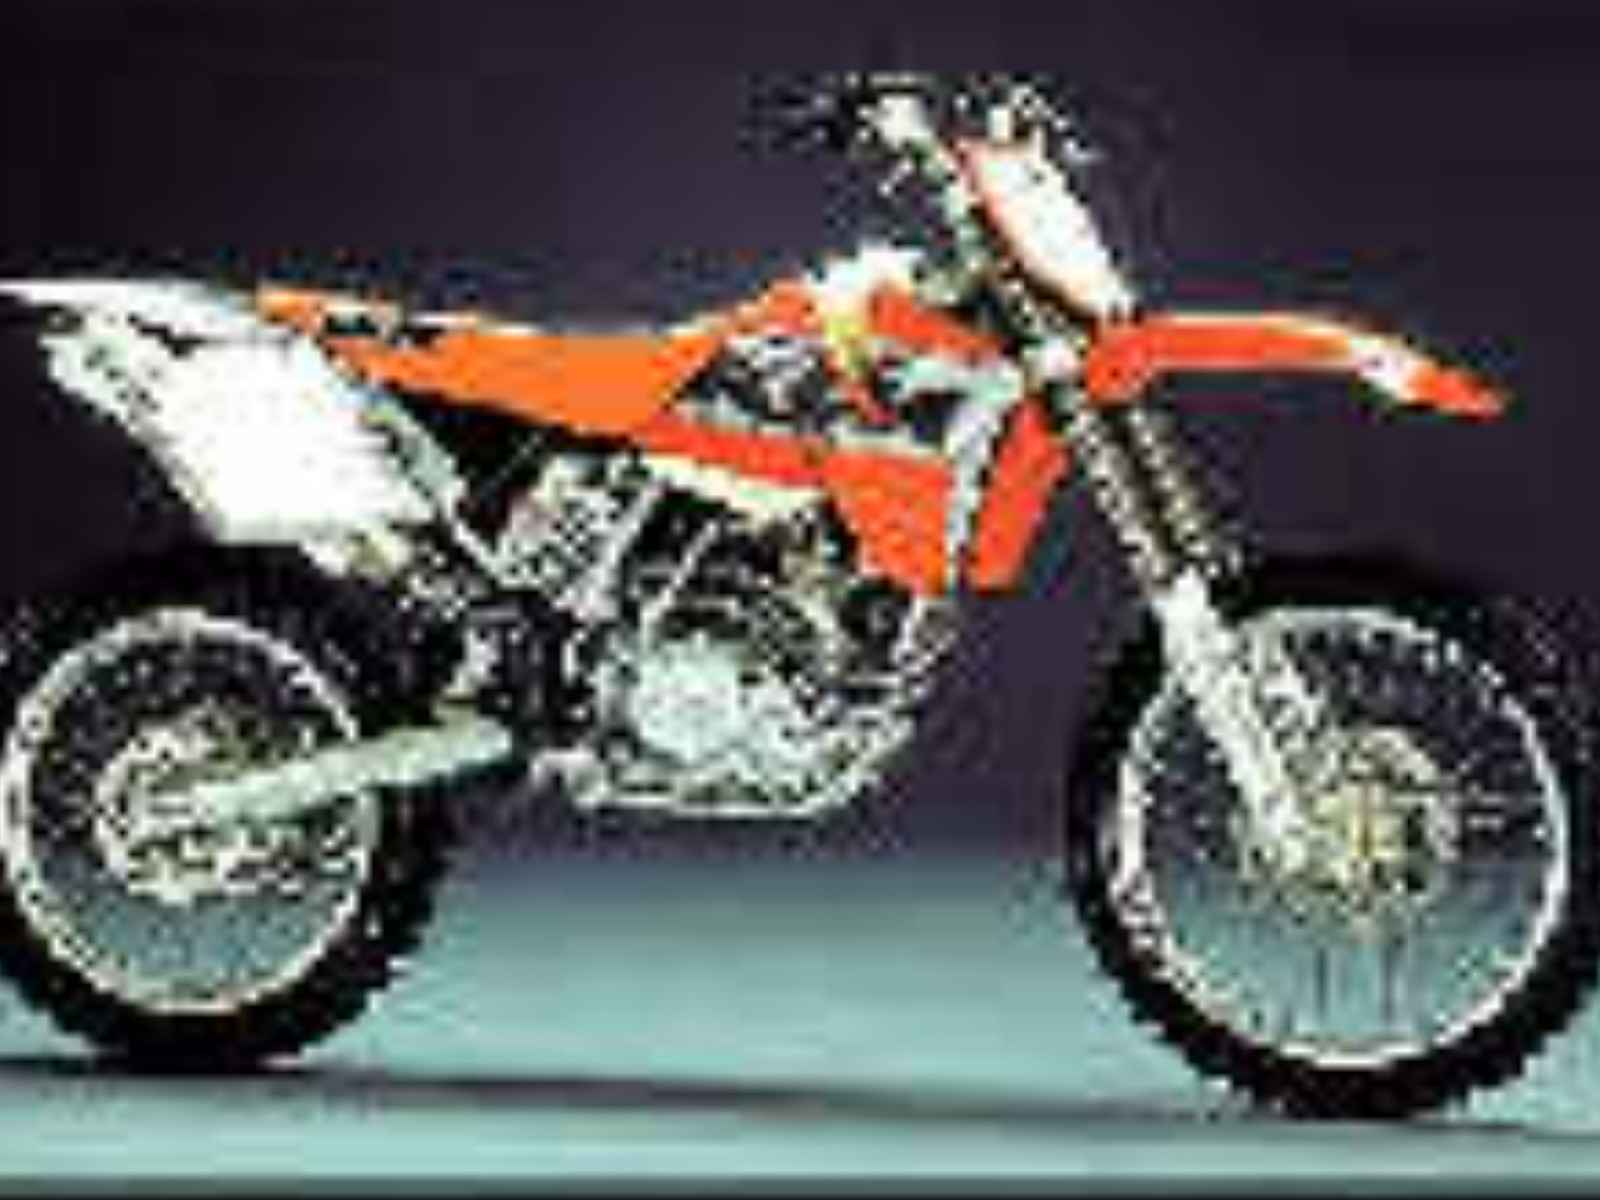 hight resolution of 2000 ktm 520 sx joel smets 1